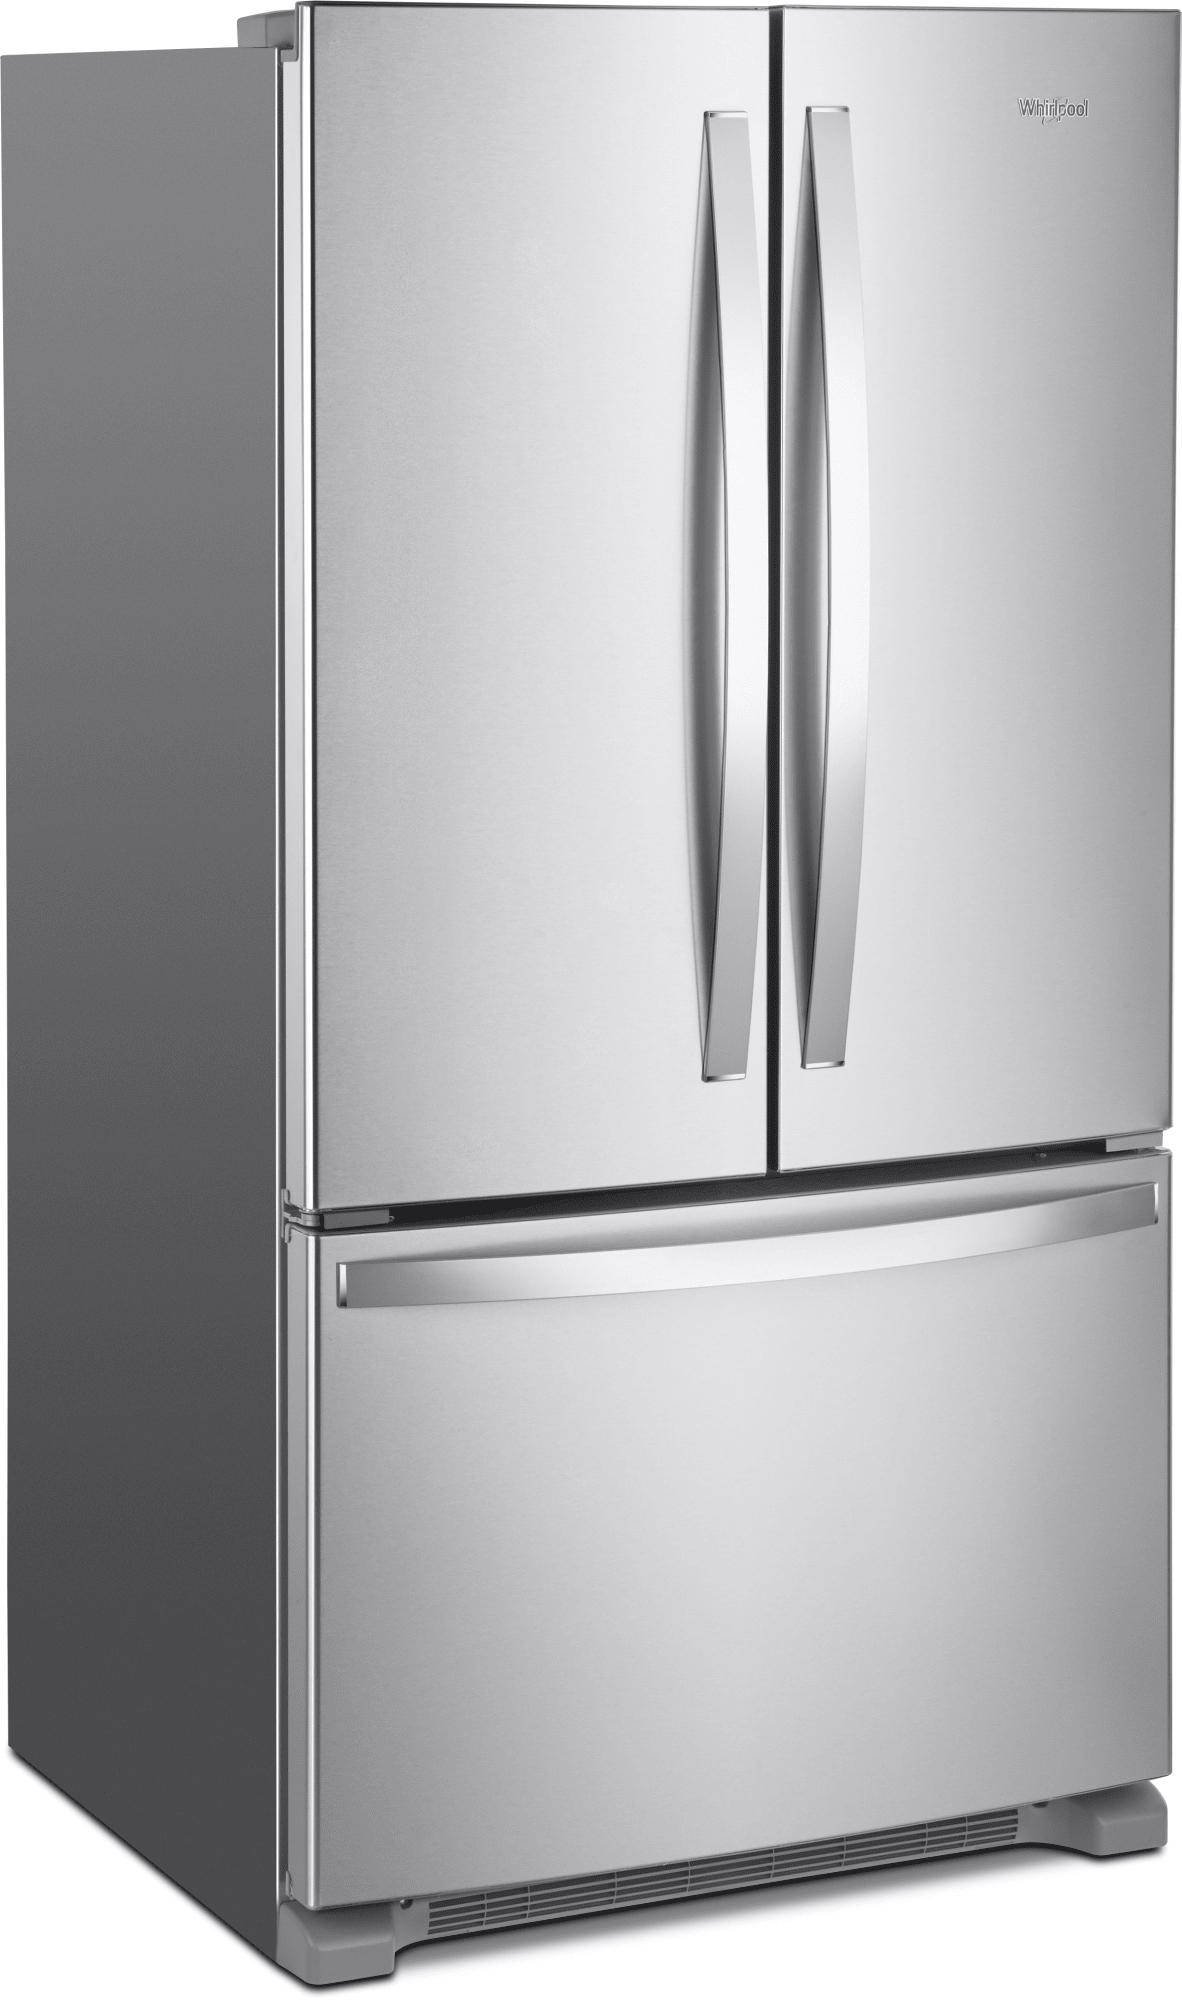 Wrf535swh Whirlpool Wrf535swh French Door Refrigerators